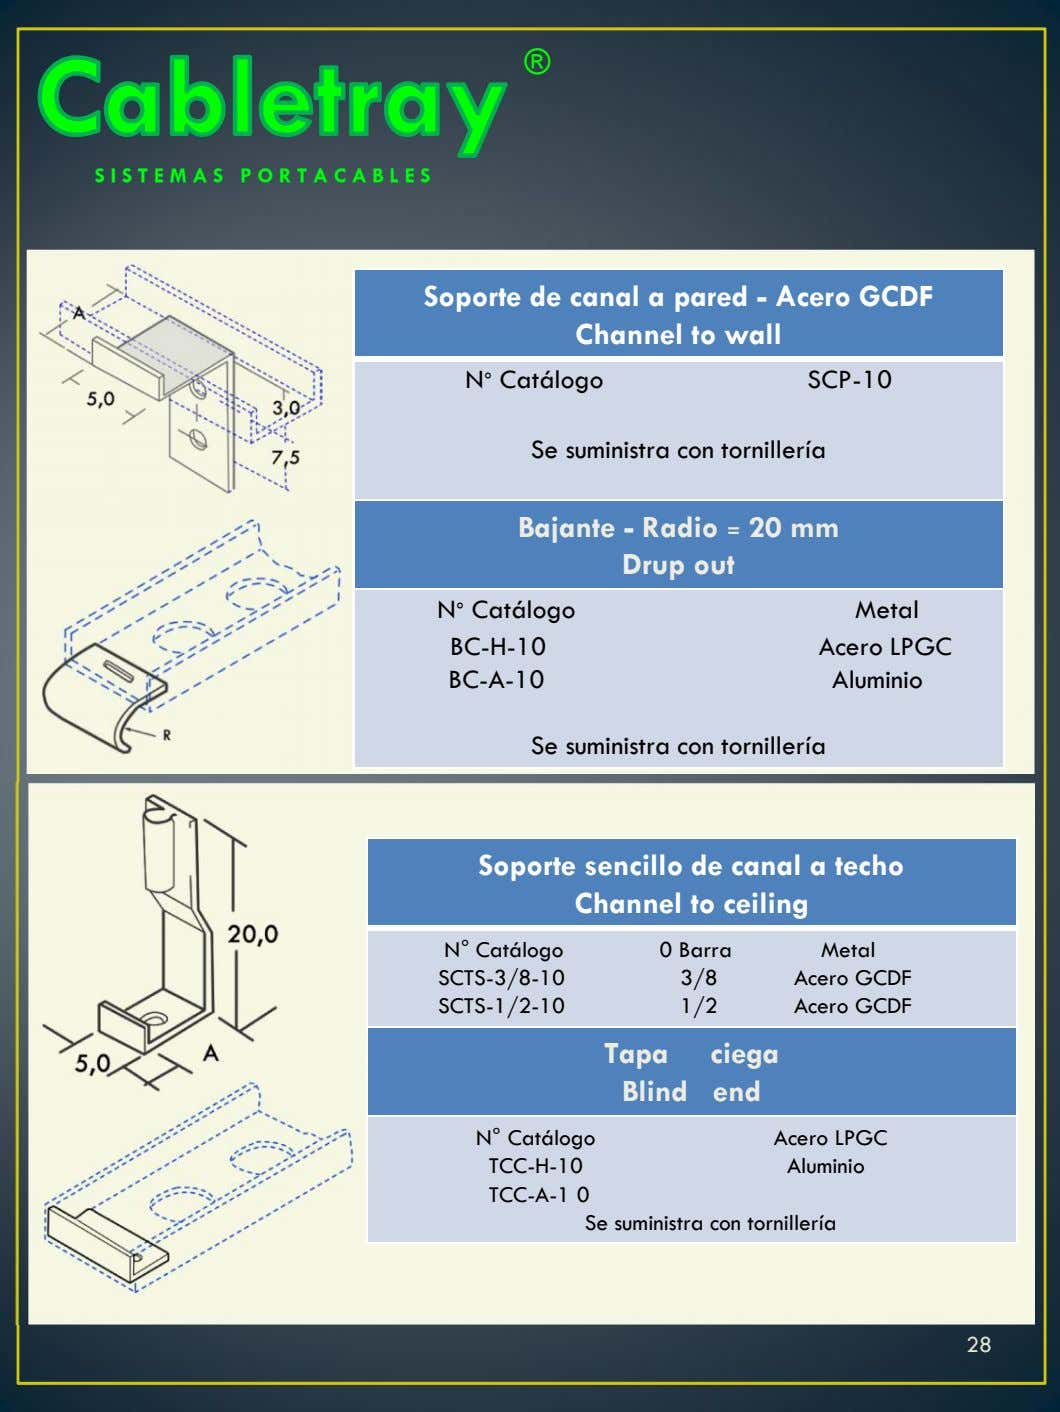 ® Soporte de canal a pared - Acero GCDF Channel to wall N° Catálogo SCP-10